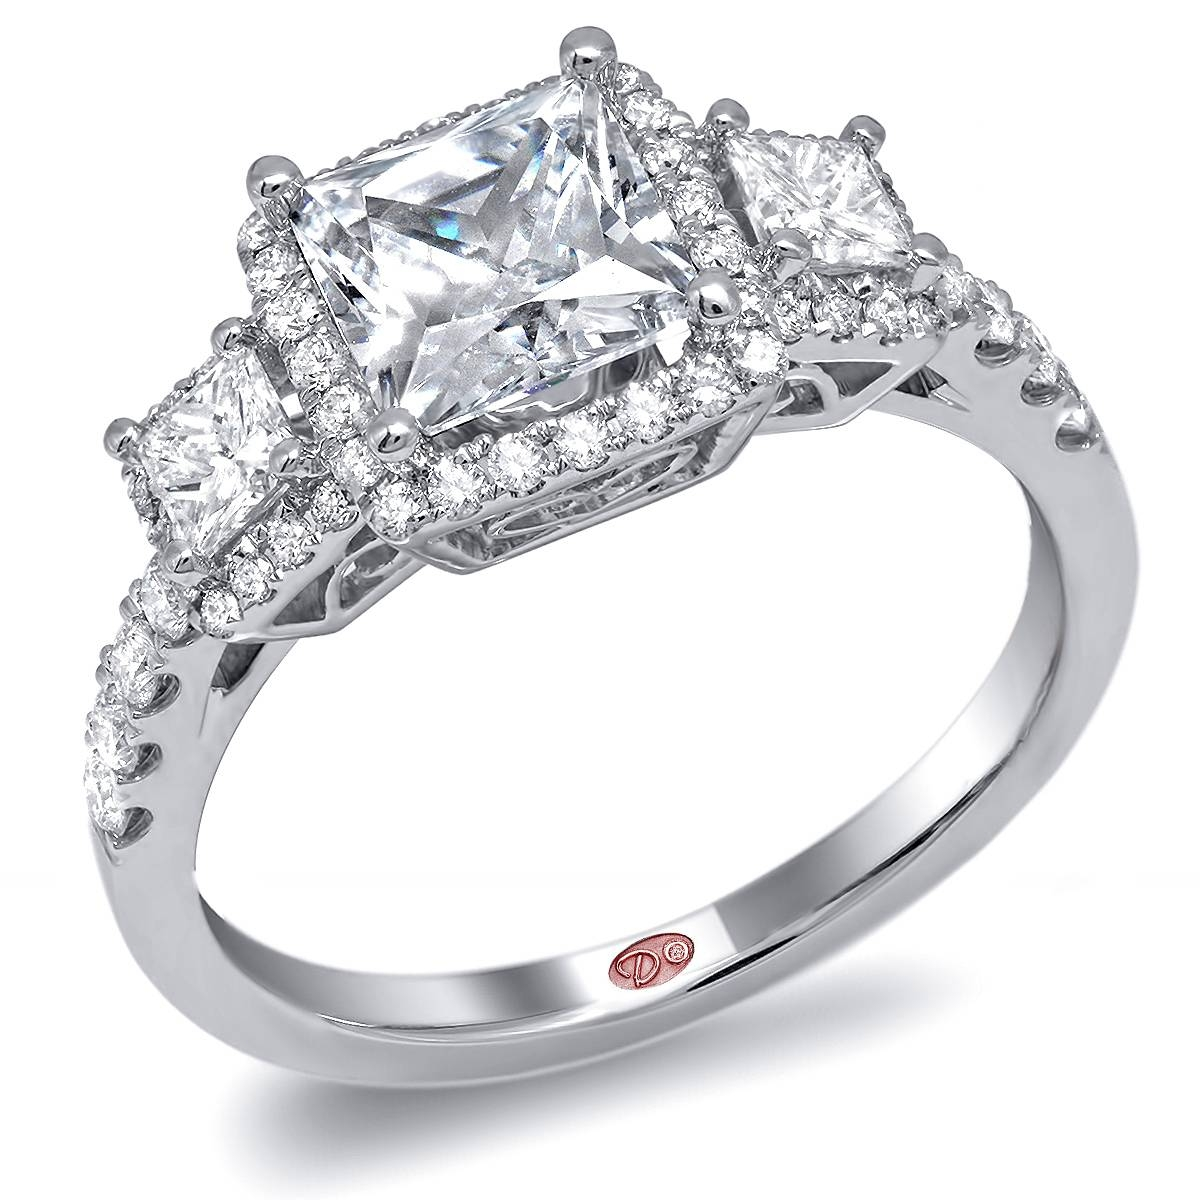 Designer Engagement Rings | Wedding, Promise, Diamond, Engagement In Designing An Engagement Rings (View 4 of 15)